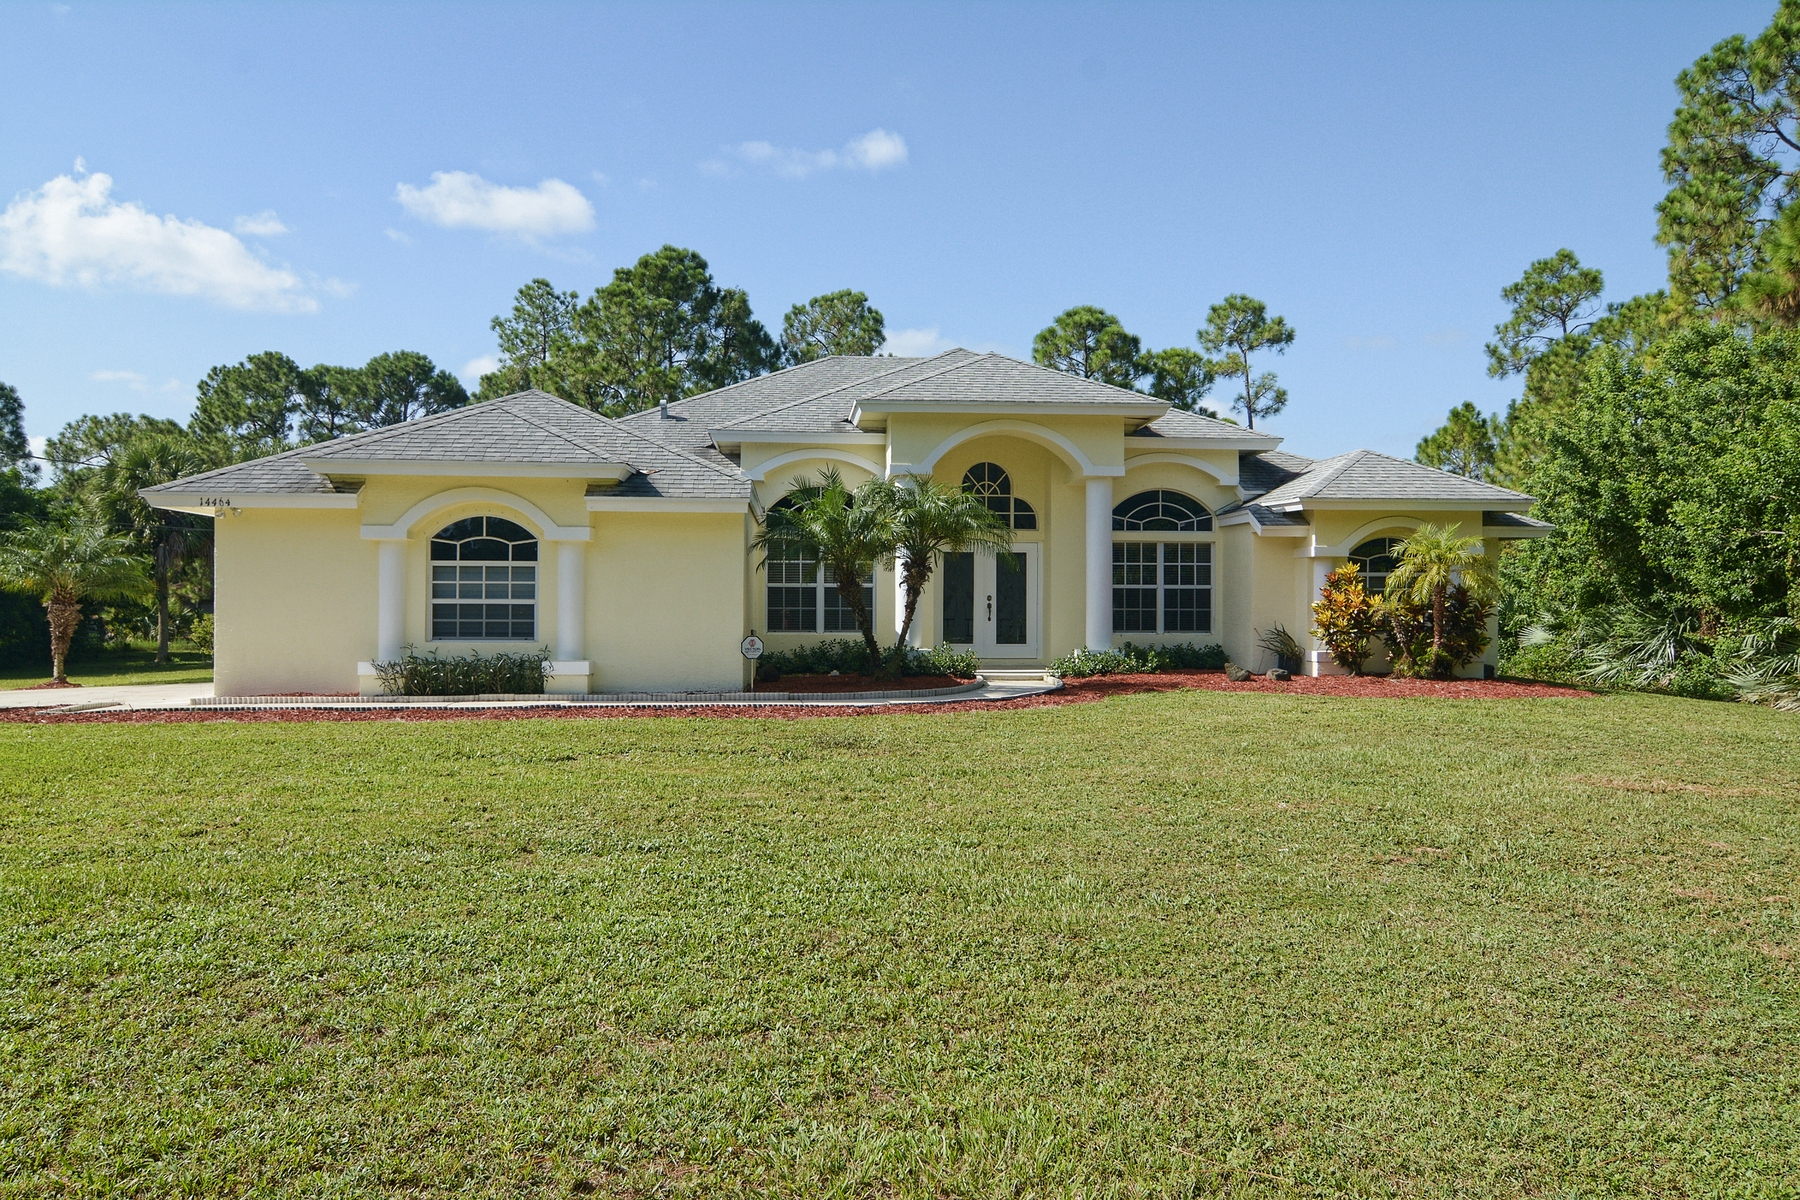 Single Family Home for Sale at 14464 67th St. N Loxahatchee, Florida, 33470 United States